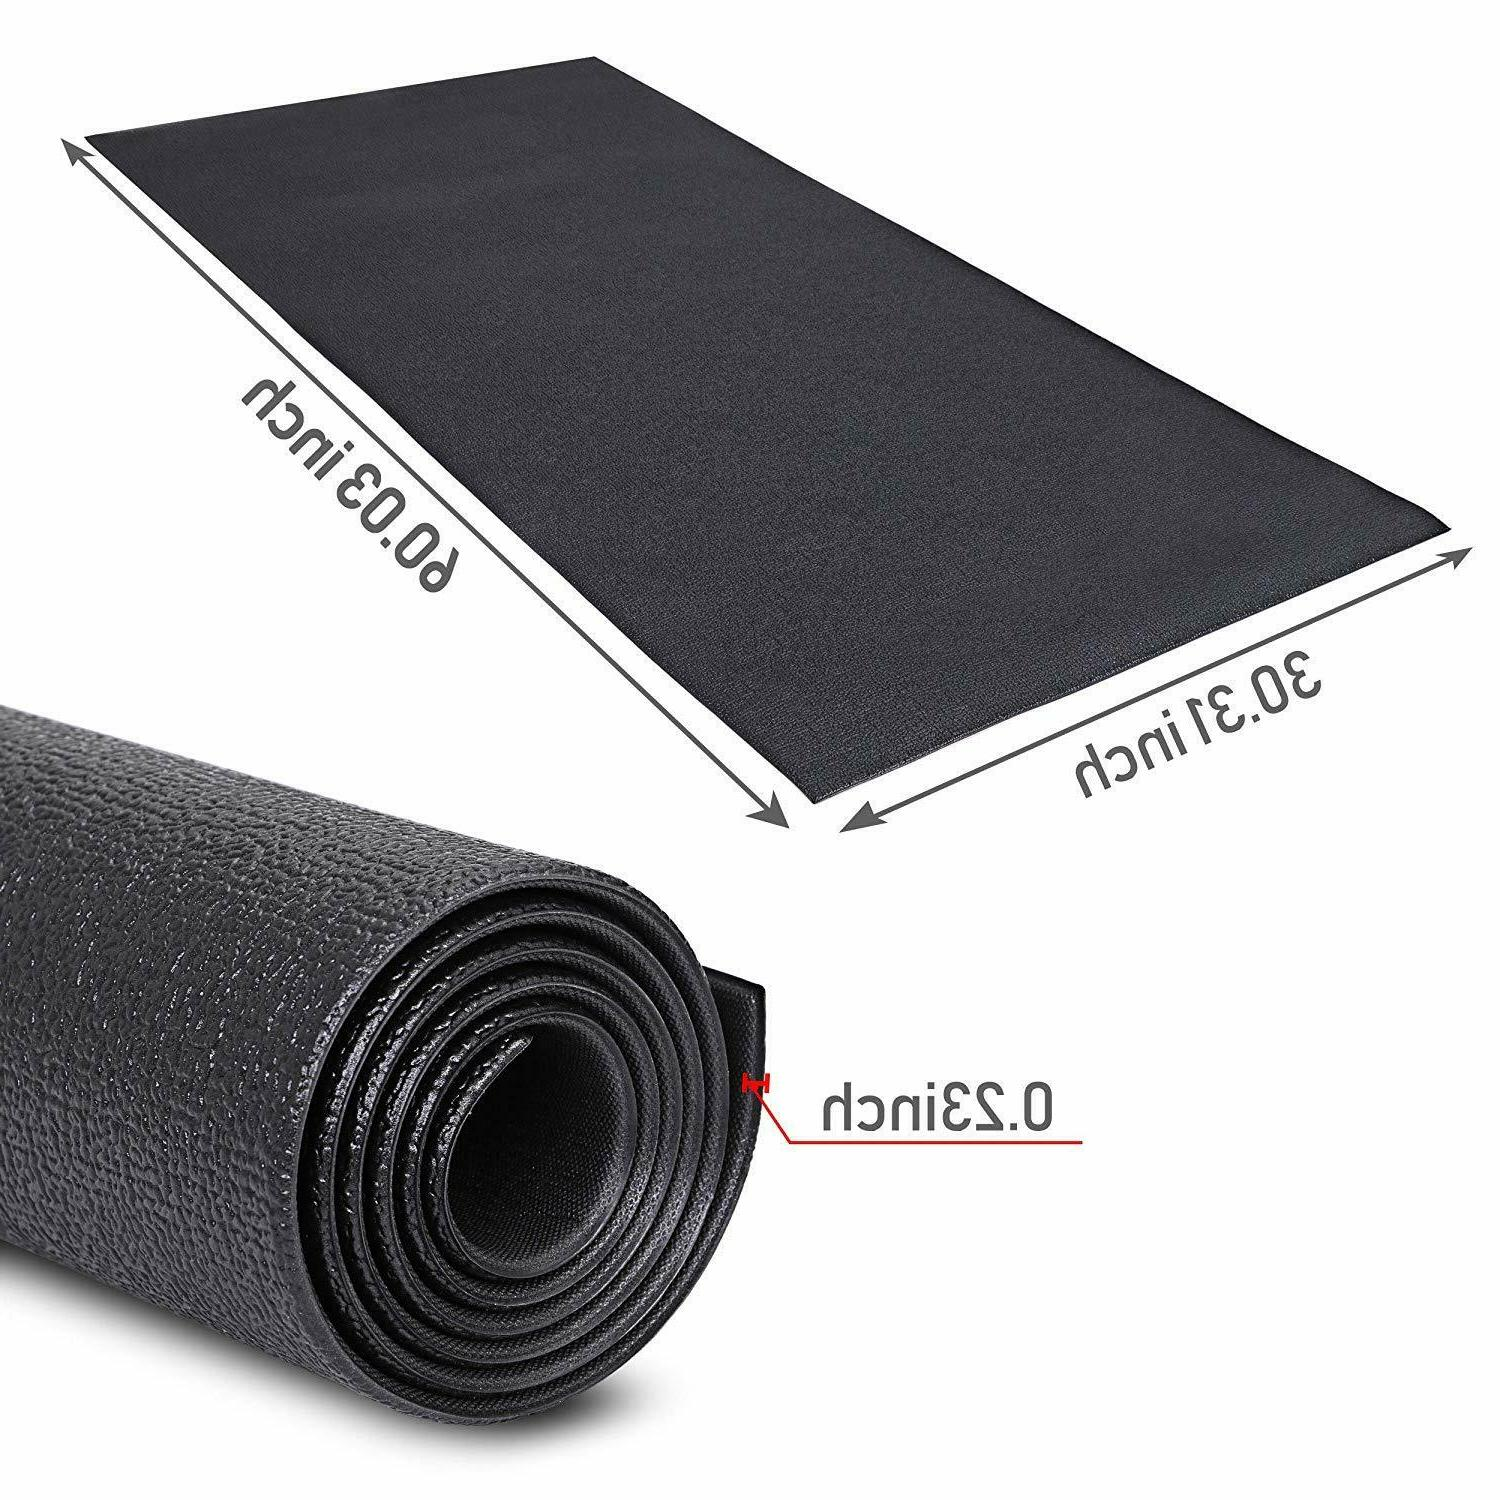 2.5'x Mat Gym Floor Protector